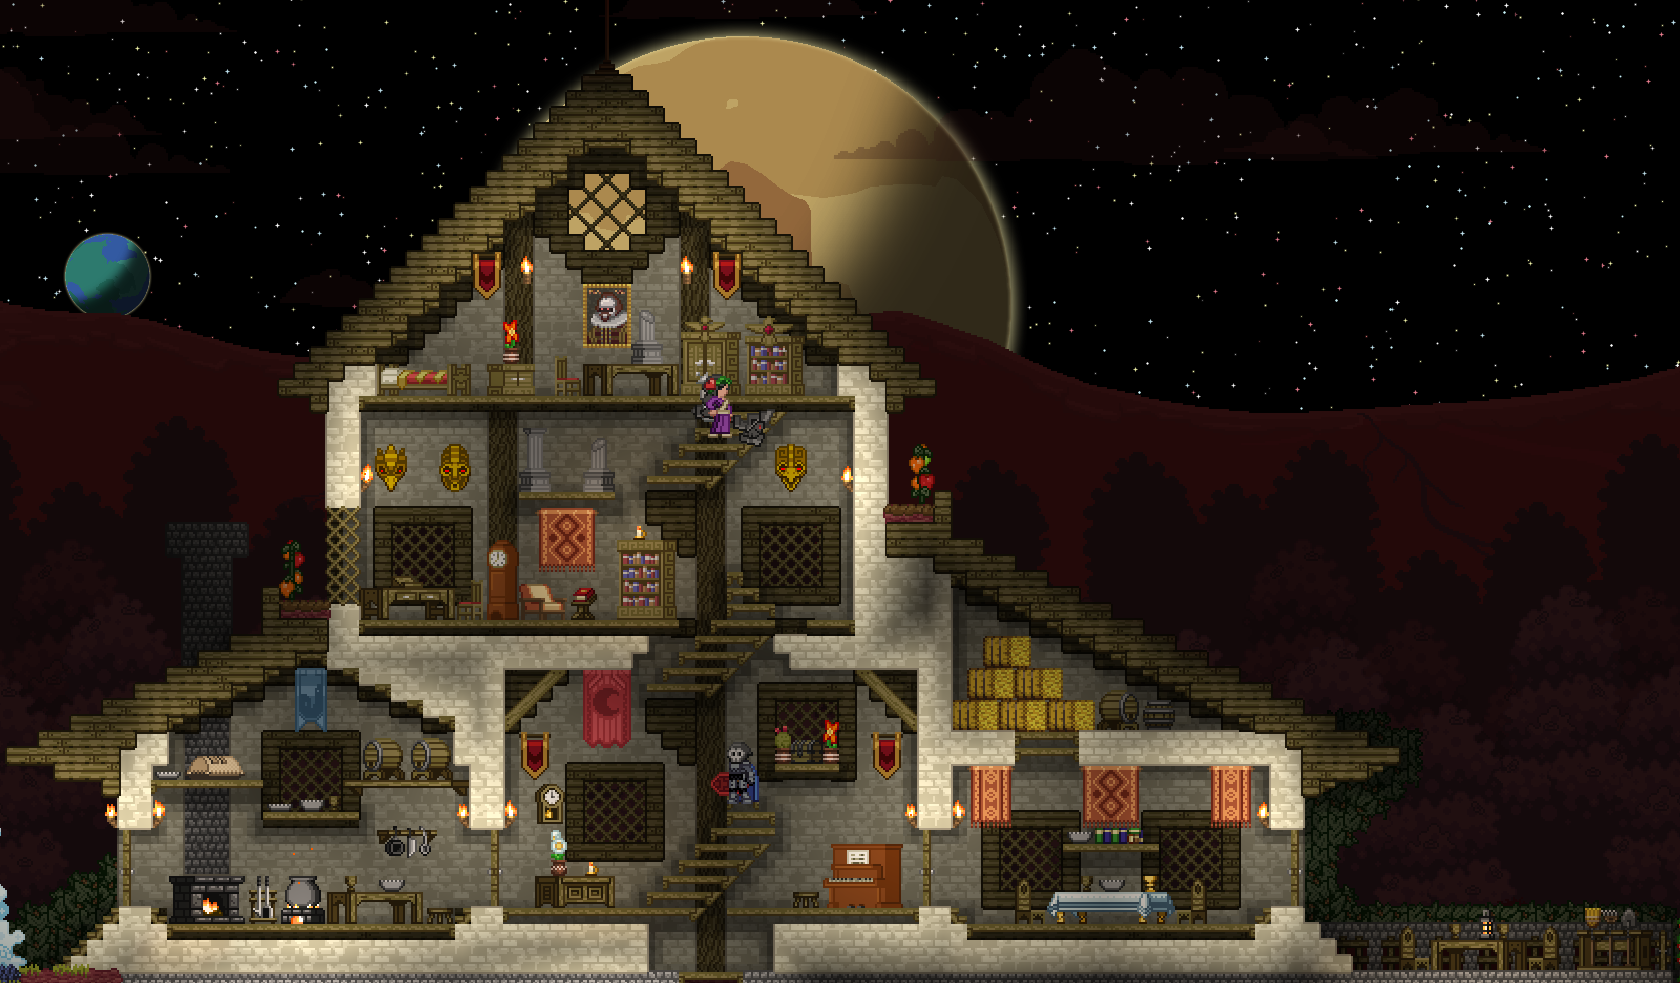 Building ship show off your house d page 55 chucklefish forums Build my home